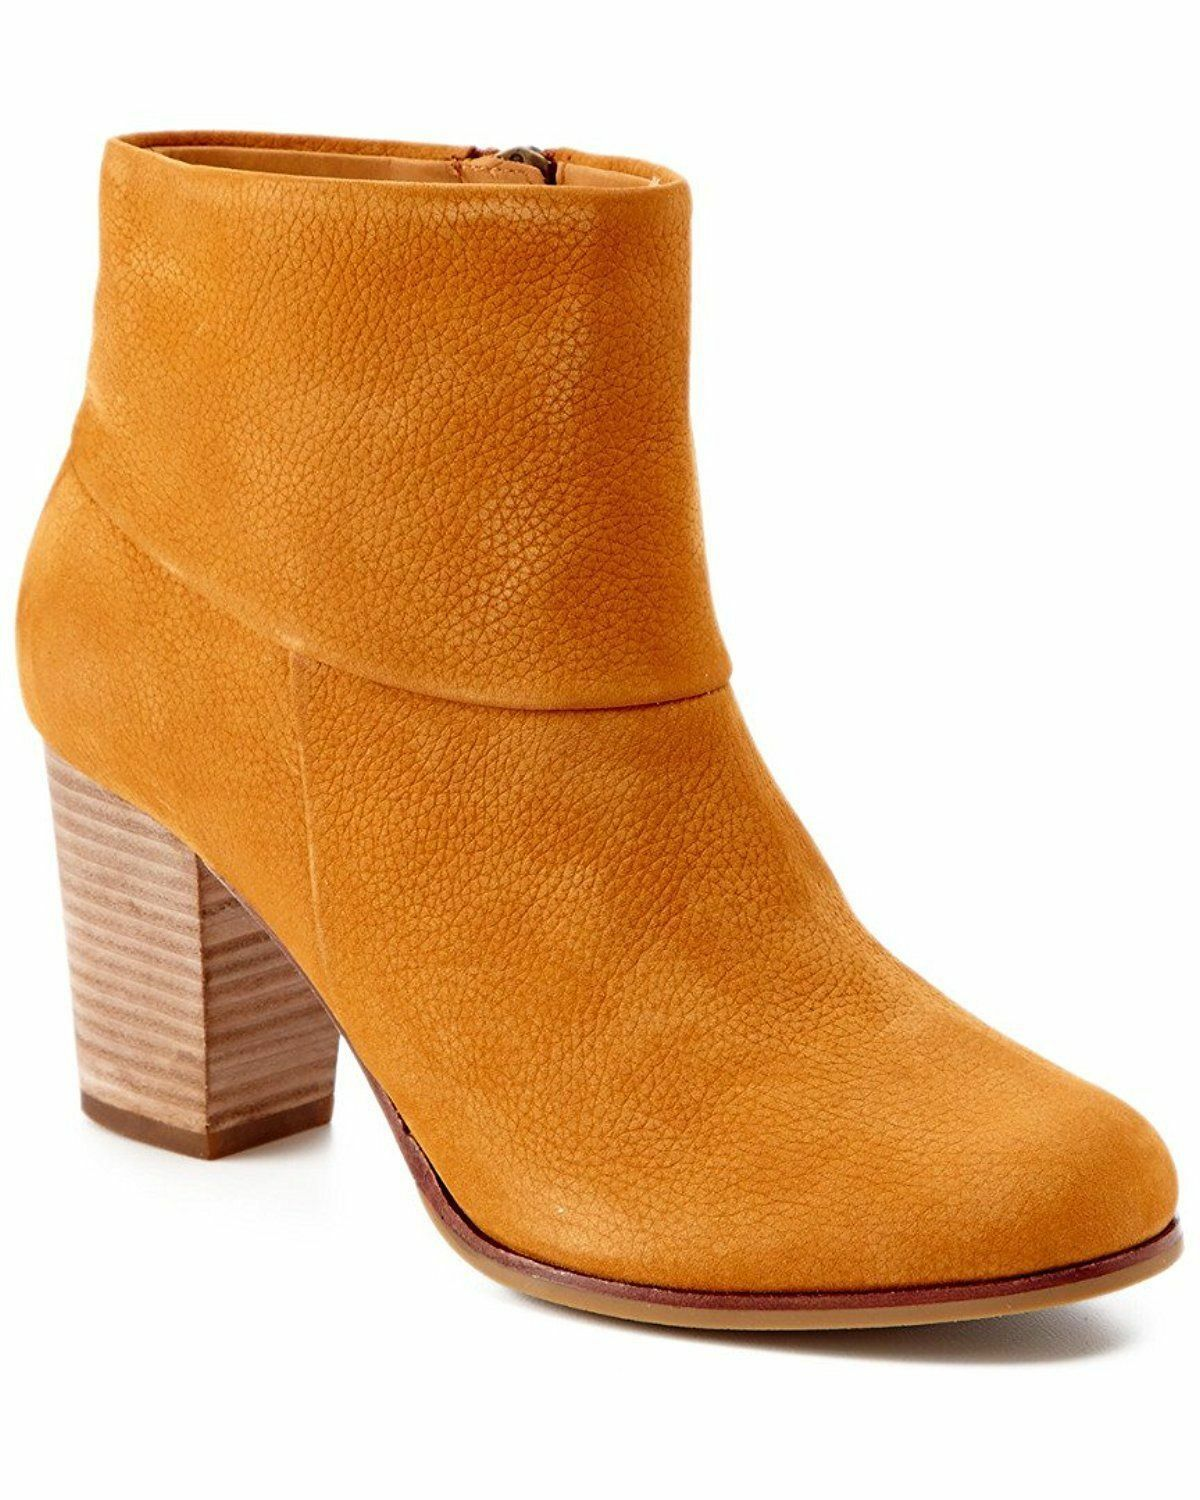 Cole Haan Cassidy Nubuck Zip Ankle Stiefel damen Camello 10 NEW IN BOX